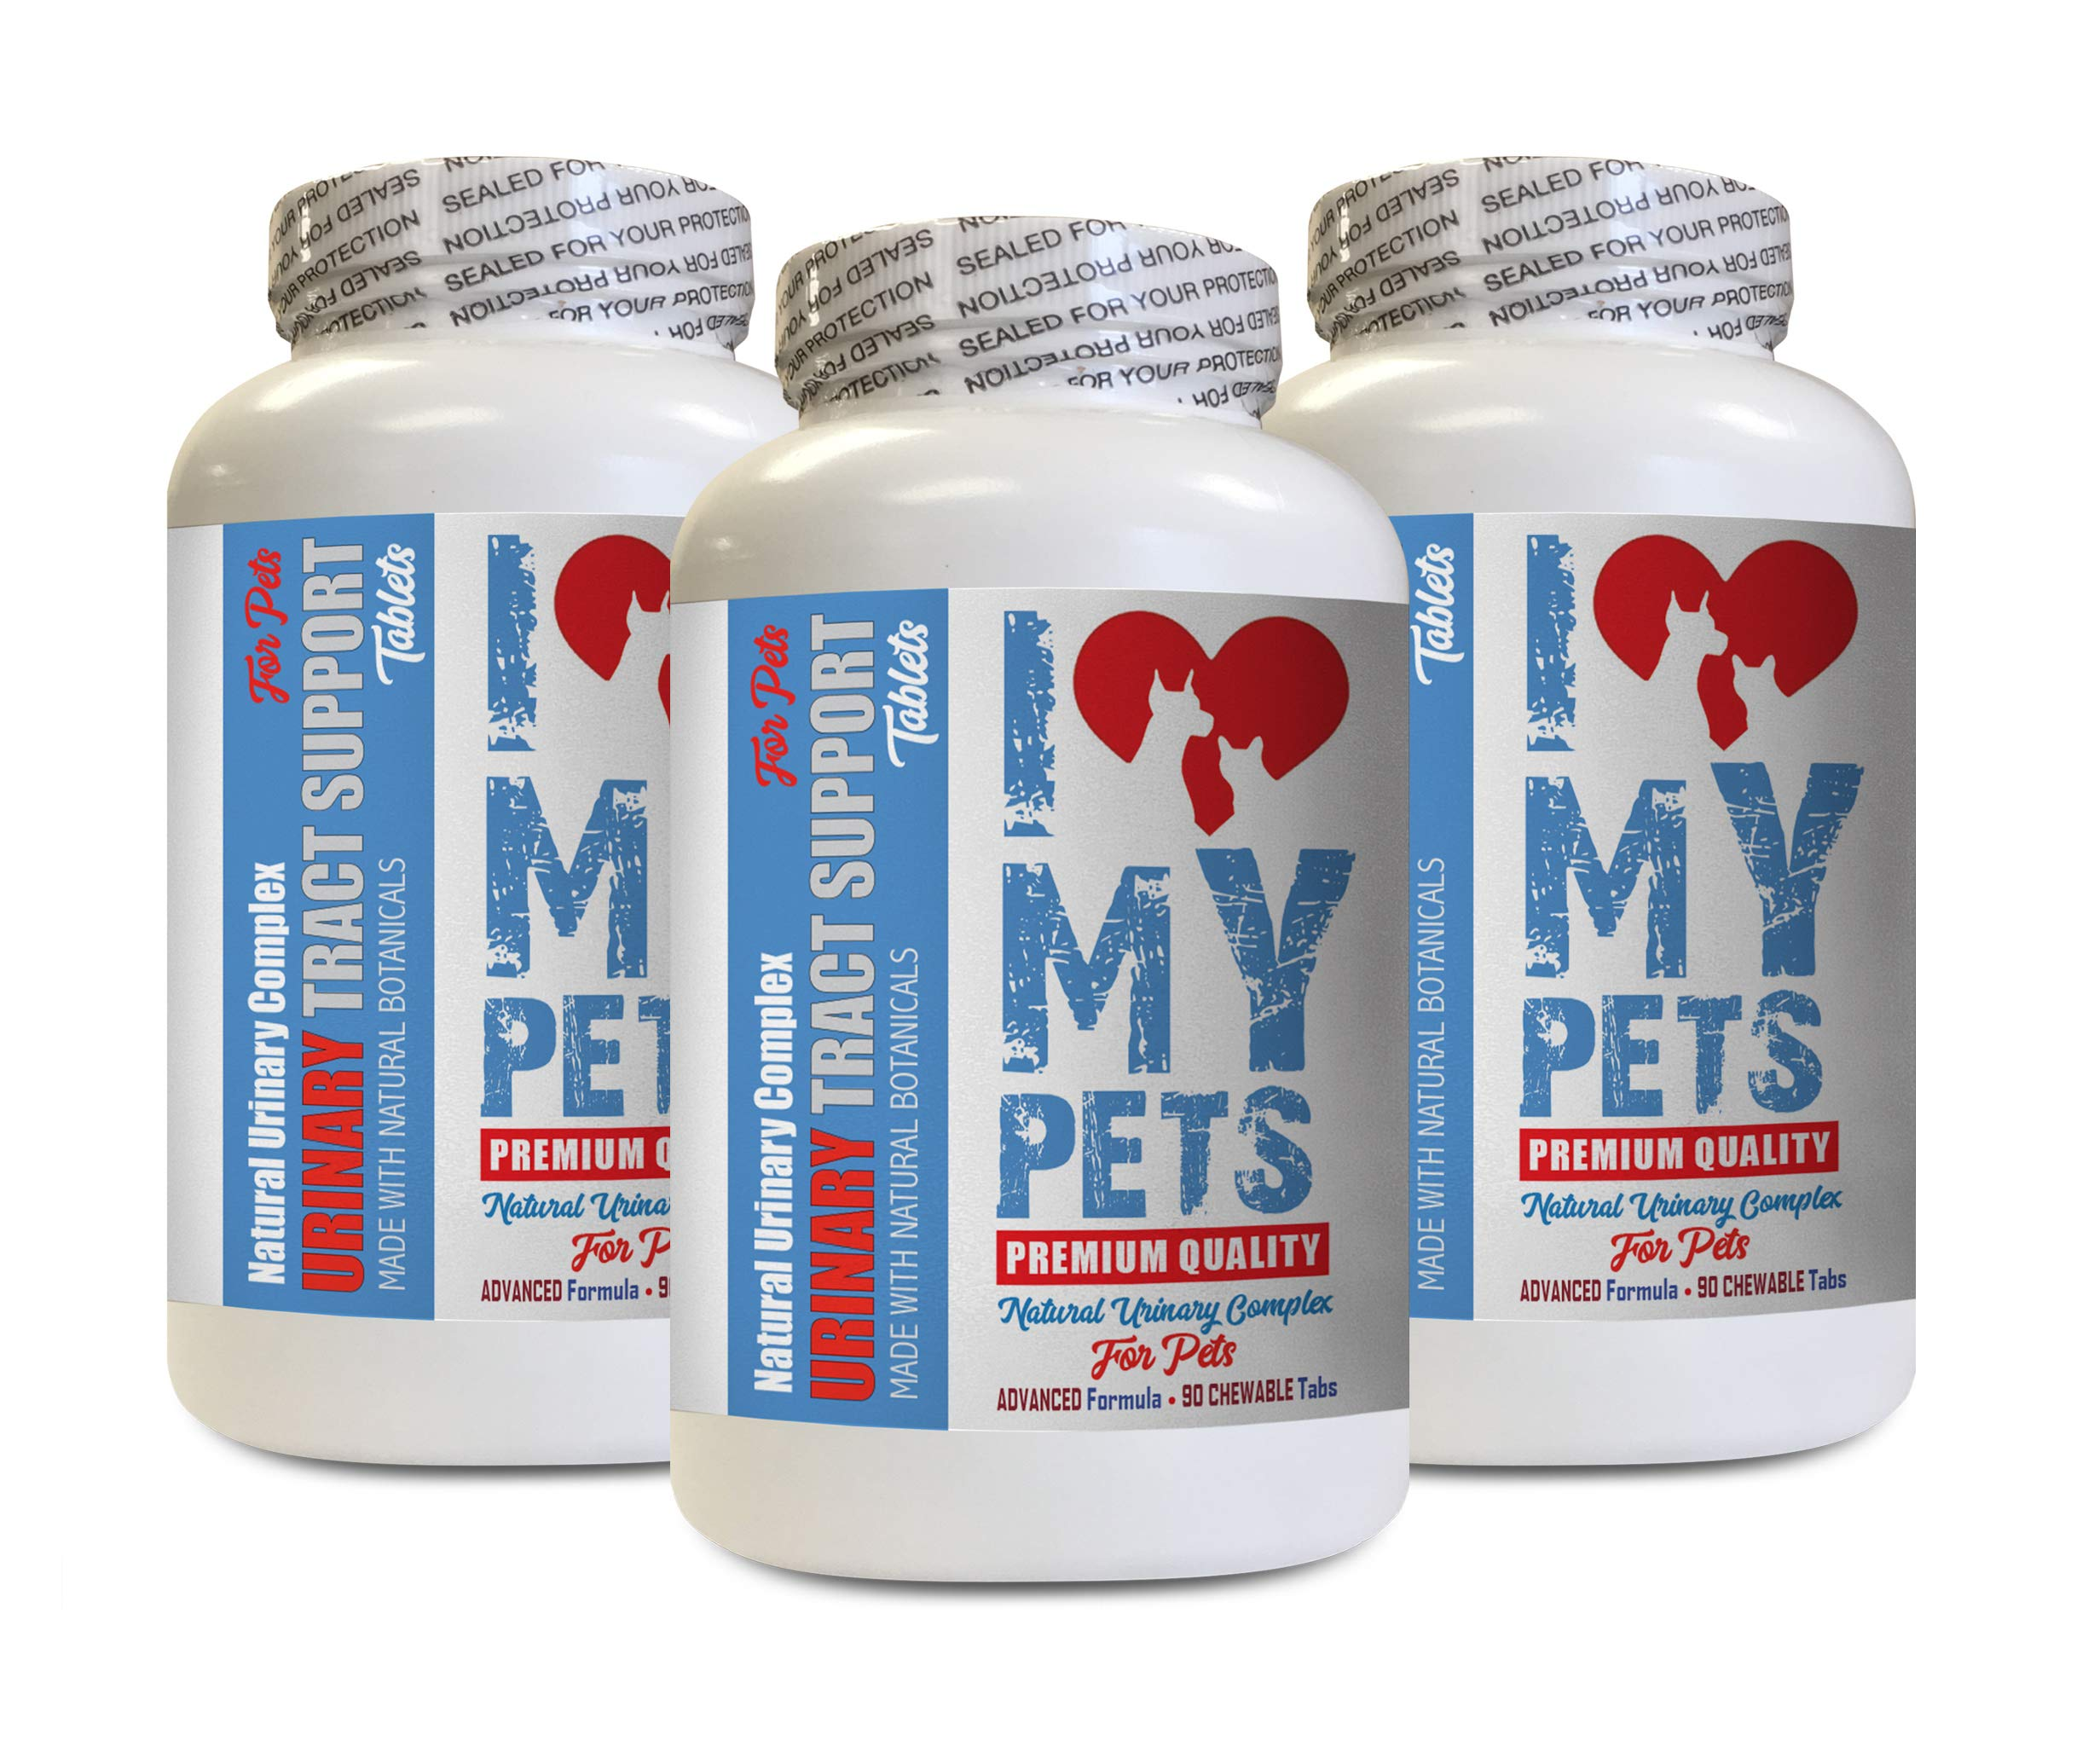 I LOVE MY PETS LLC Urinary Supplements for Cats - PET Urinary Tract Support - Dogs and Cats - UTI Relief Complex - Cranberry Comfort for Cats - 270 Treats (3 Bottles) by I LOVE MY PETS LLC